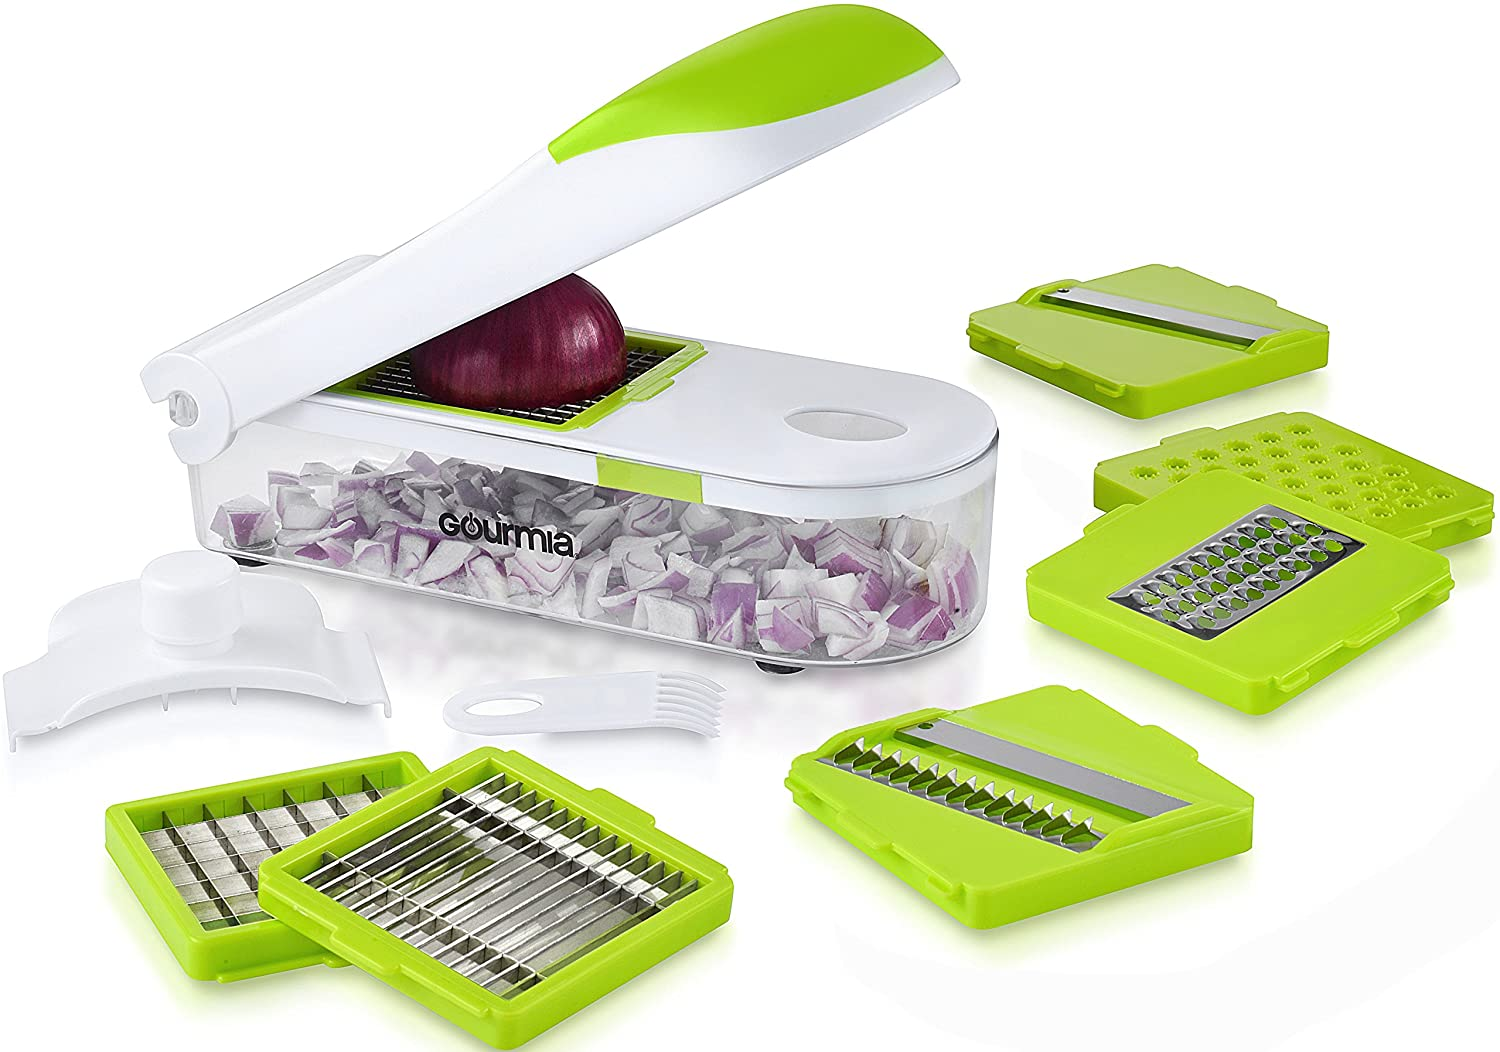 Gourmia GCU9215 Multipurpose Kitchen Dicer Set Mandoline, Julienne, Slicer, Chopper, Shredder,and Grater Set With 7 Interchangeable Stainless Steel Blades,Hand Guard,Storage Lid& Cleaning Tool,BPA free